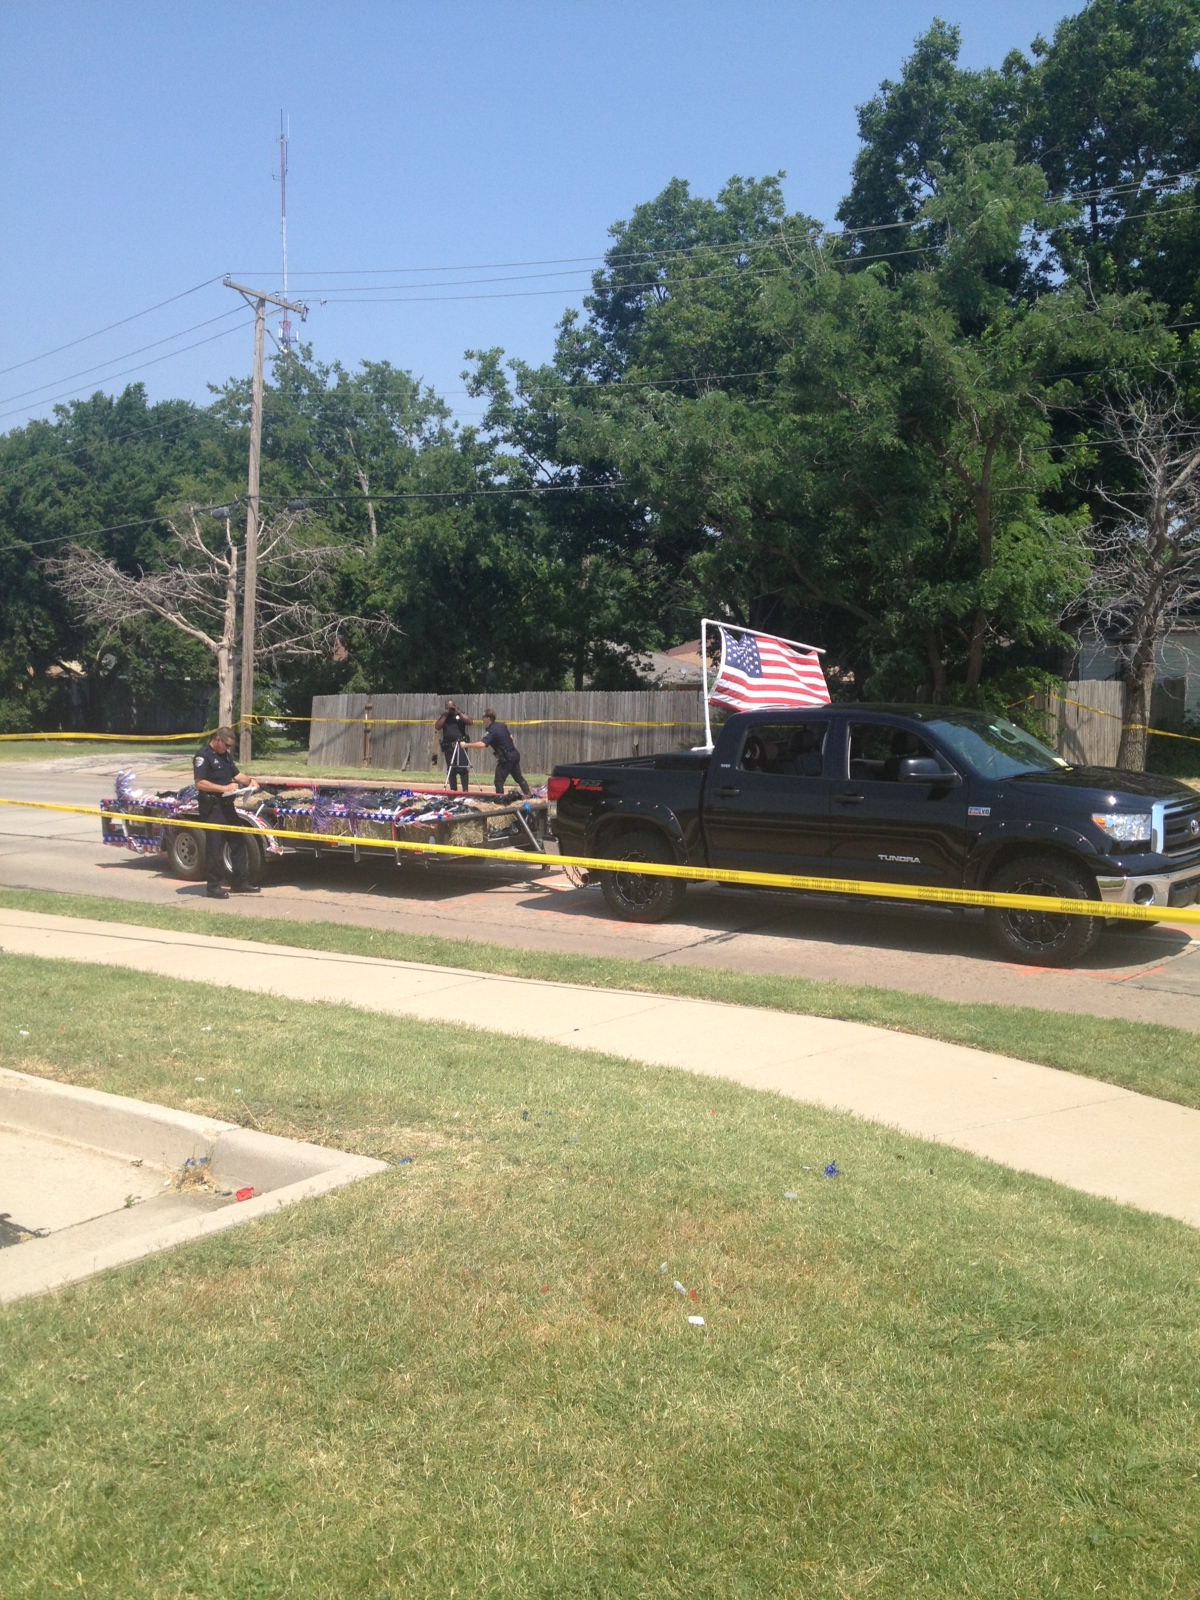 Trailer father was driving when boy fell off in parade.